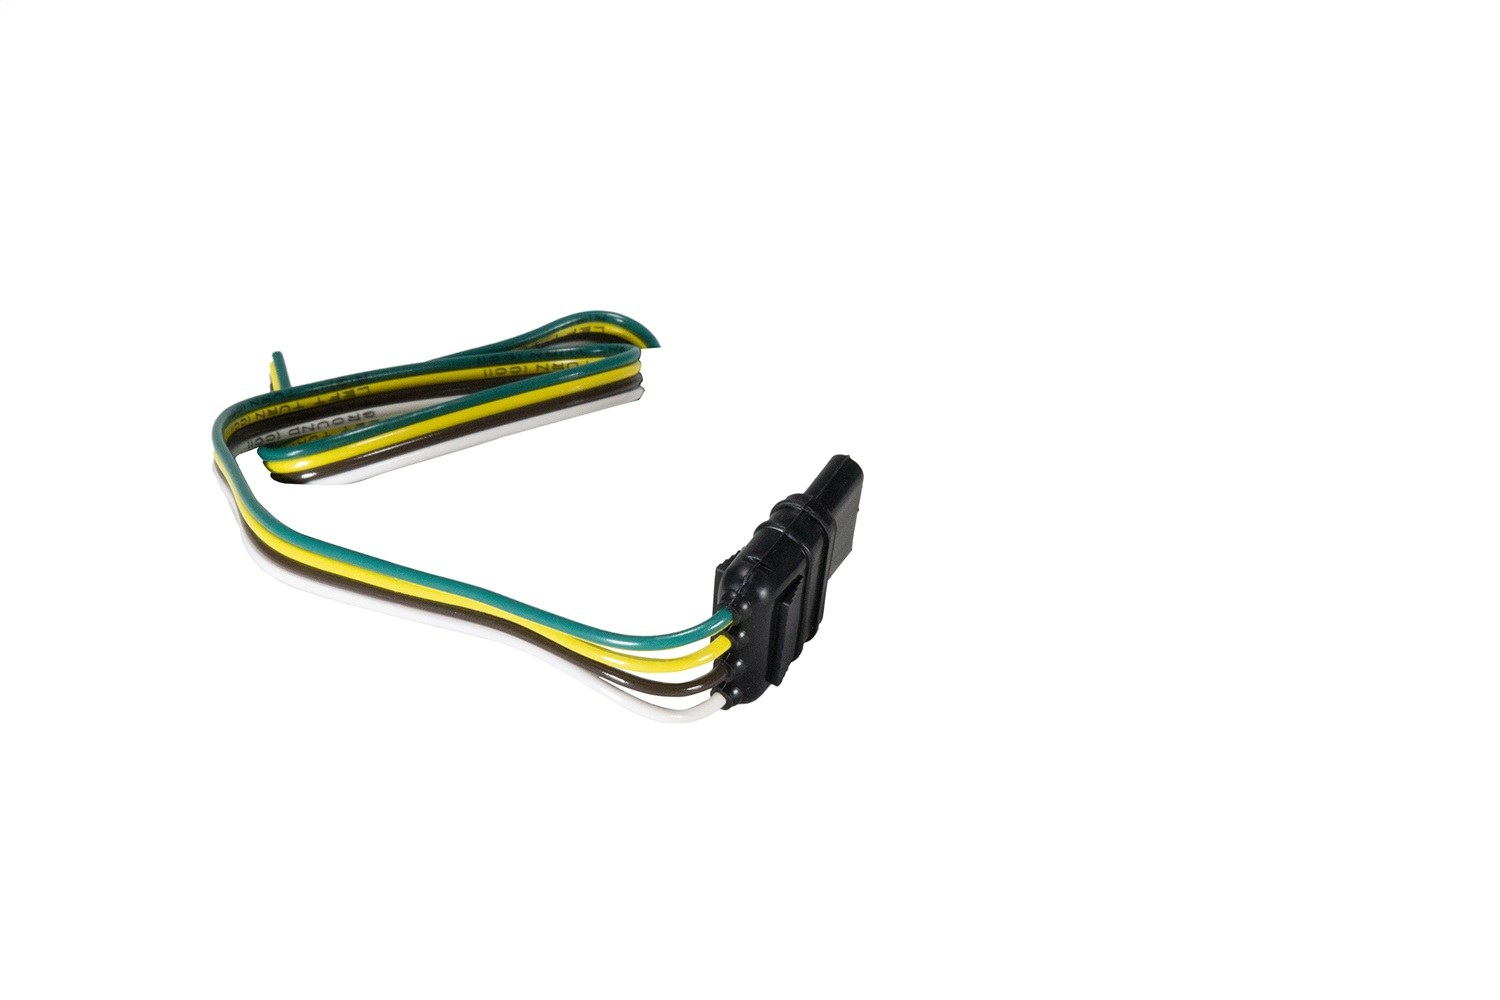 Hopkins Towing Solution 48025 4-Wire Flat Vehicle End